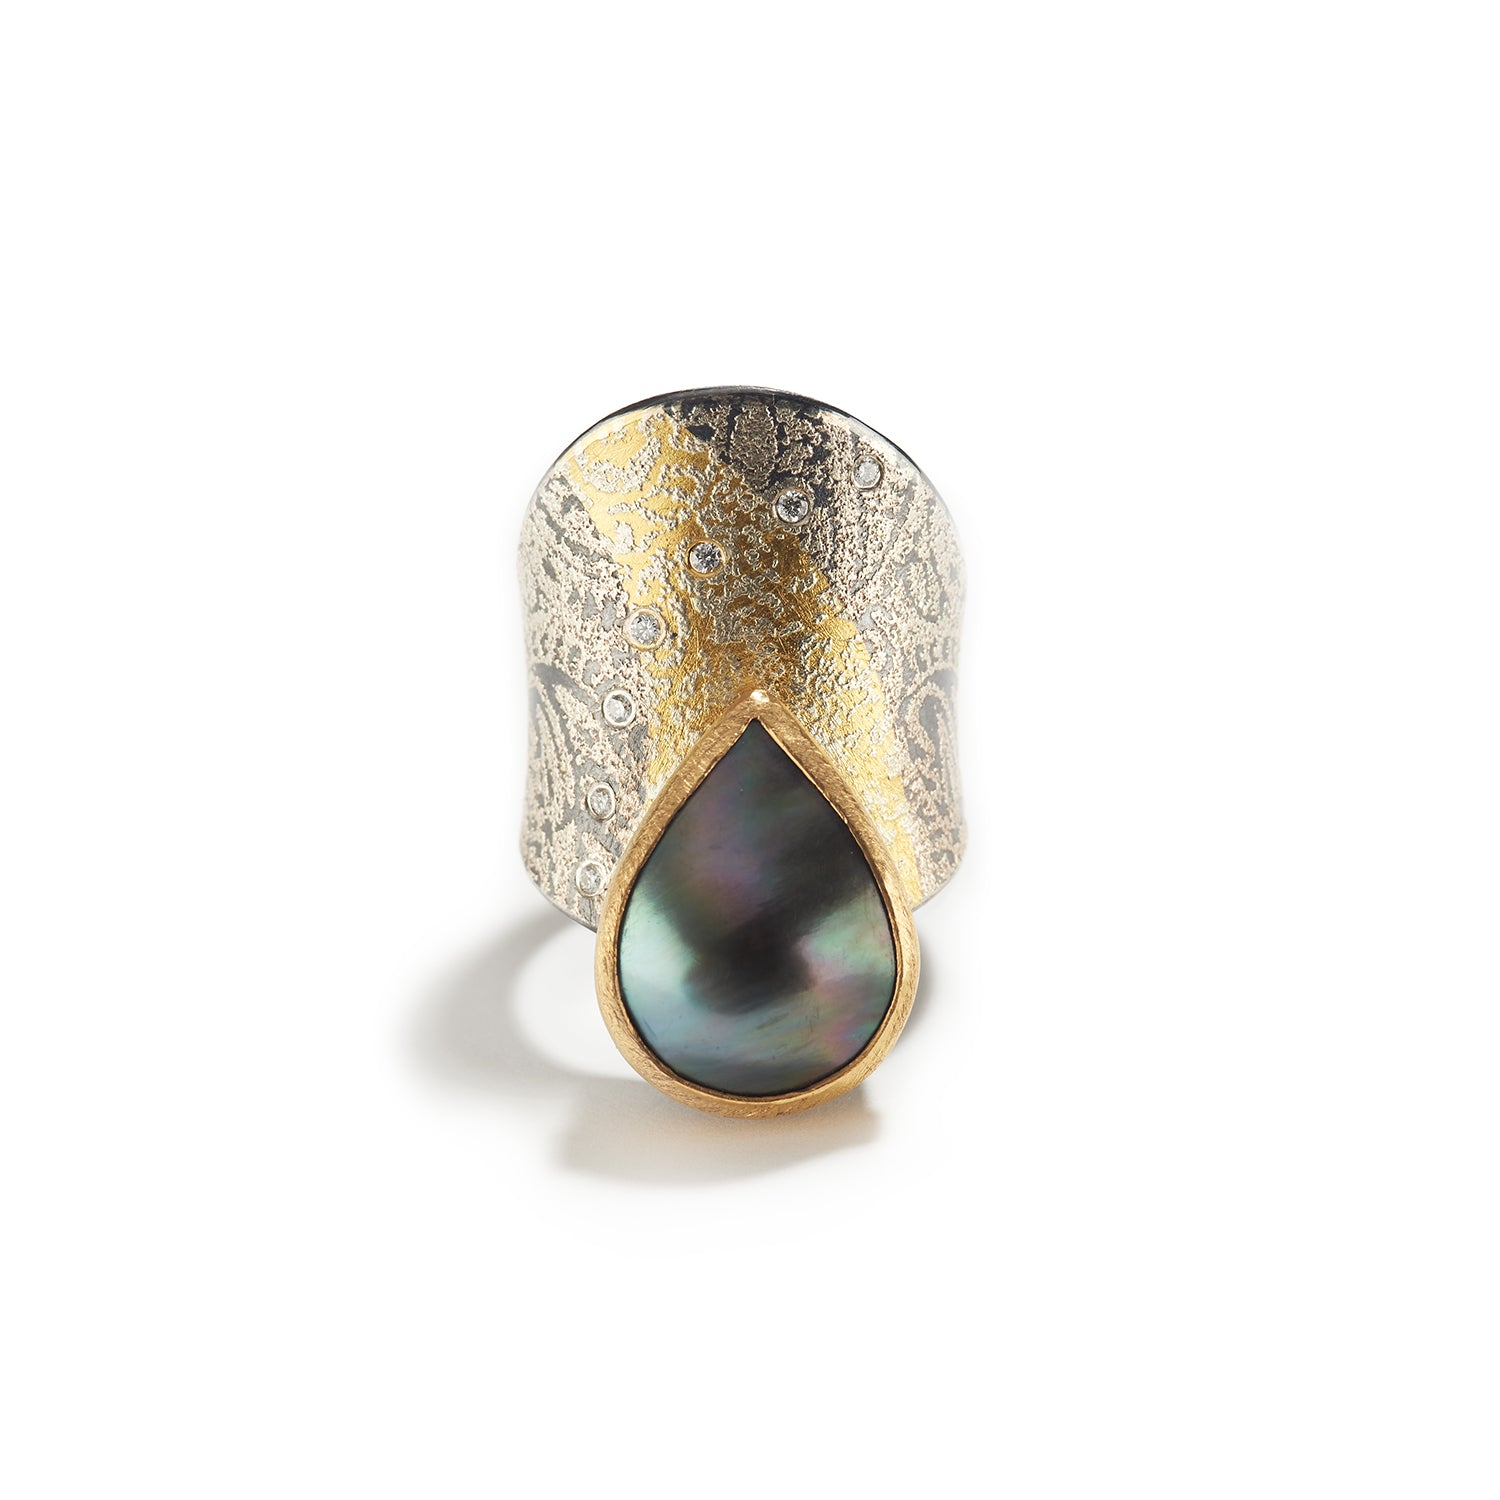 Mabé Pearl & Diamond Ring